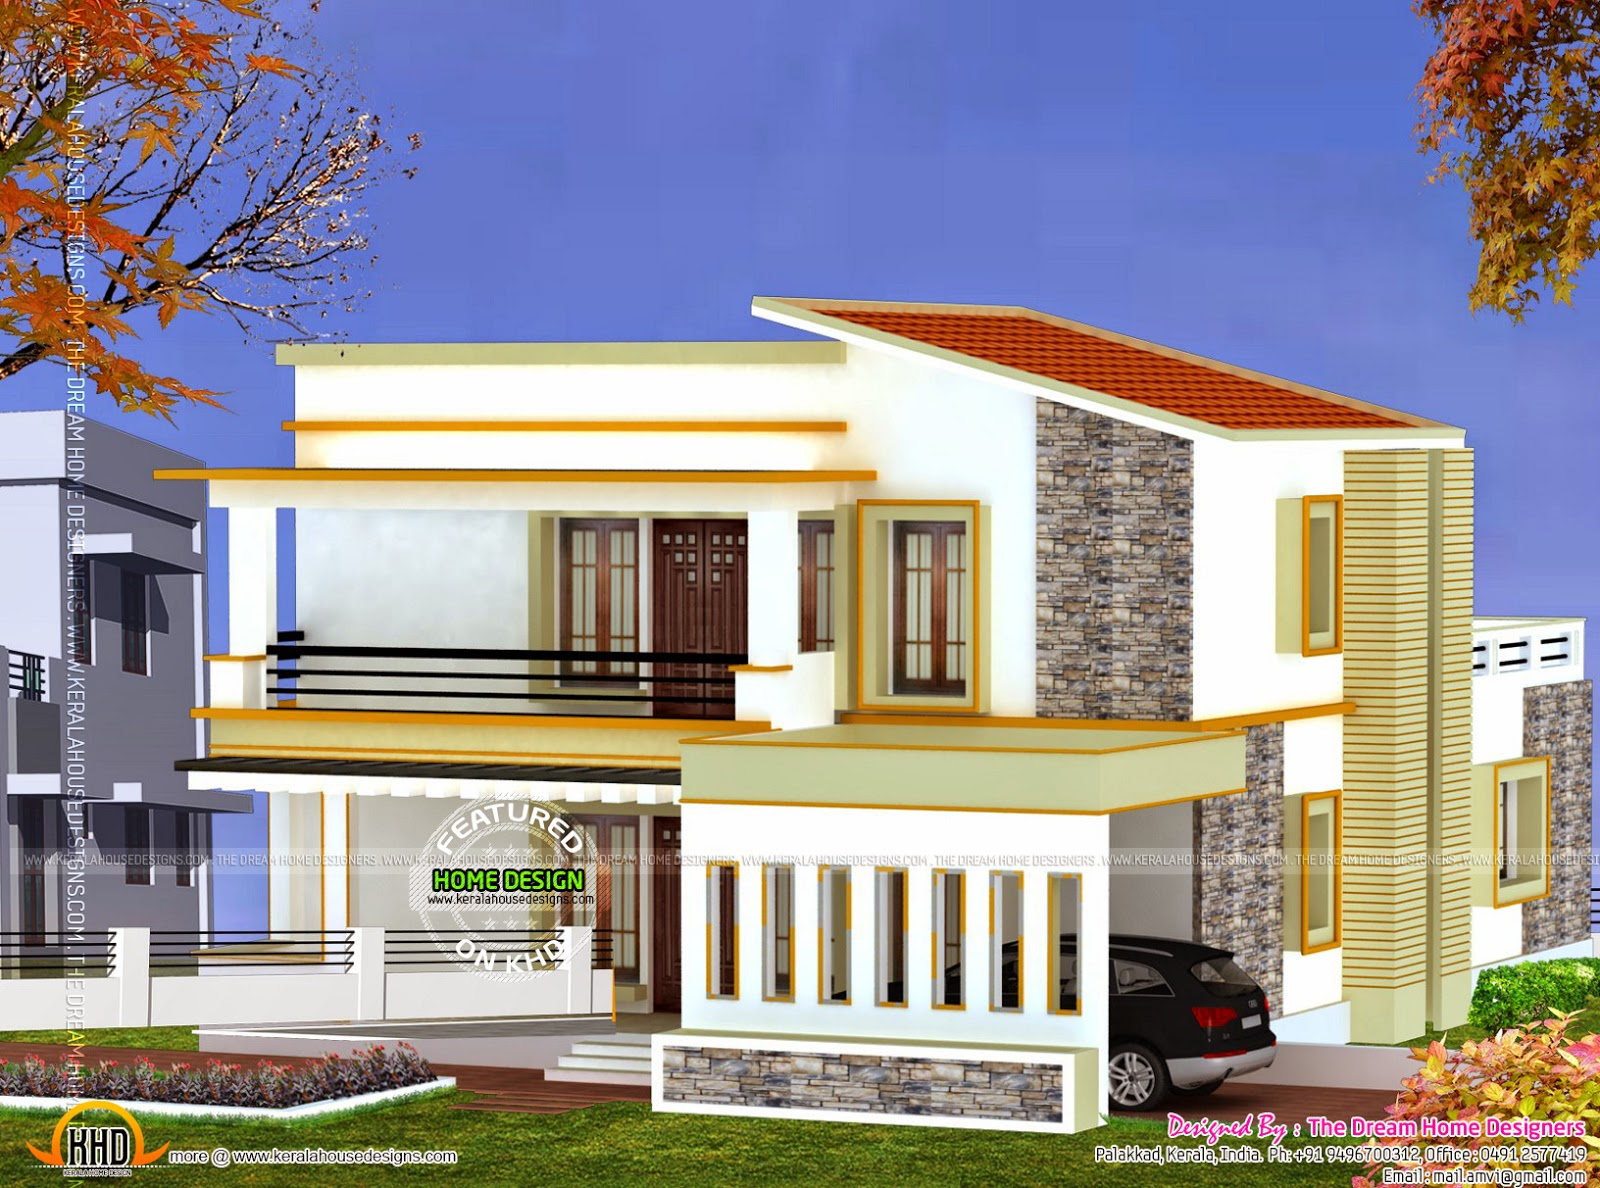 3d view and floor plan kerala home design and floor plans lakeview manor house plan country farmhouse southern